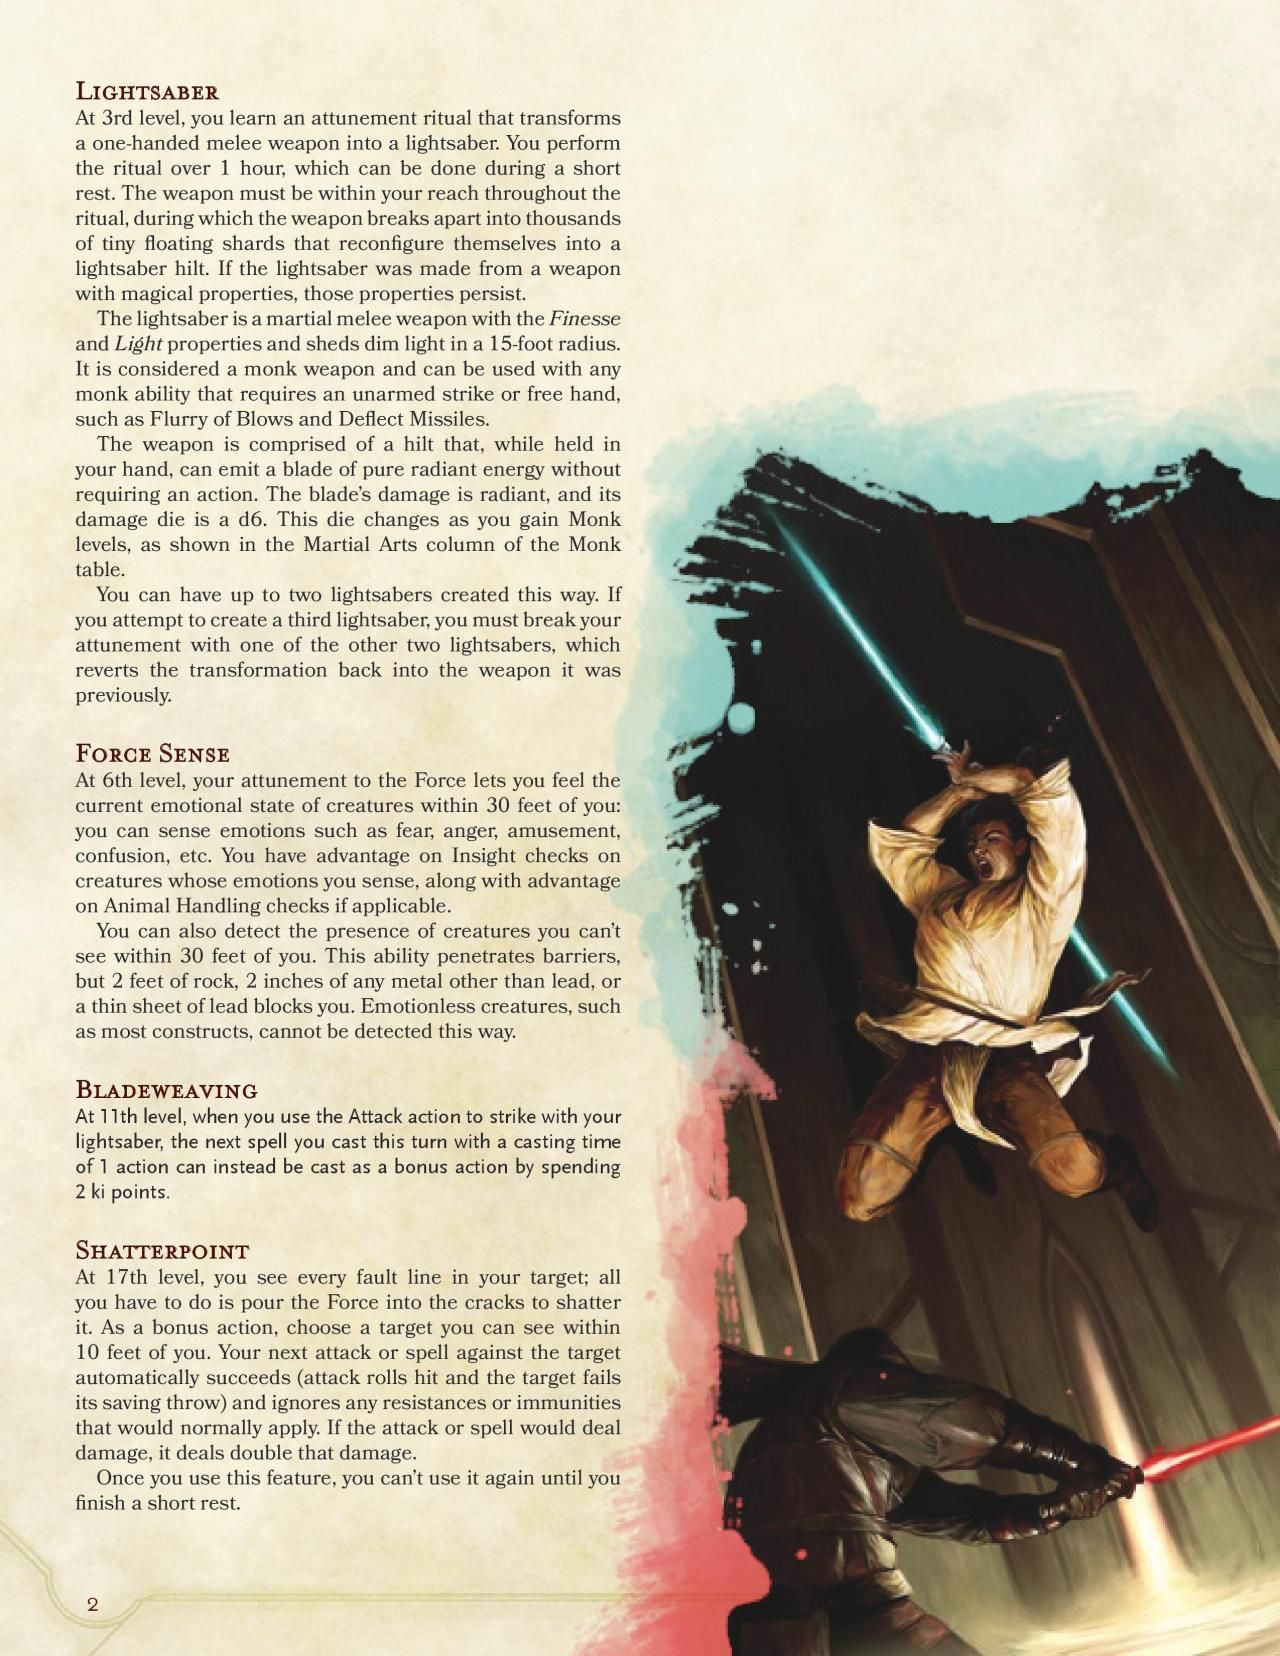 DnD 5e Homebrew — Way of the Jedi Monk by SpiketailDrake | Character